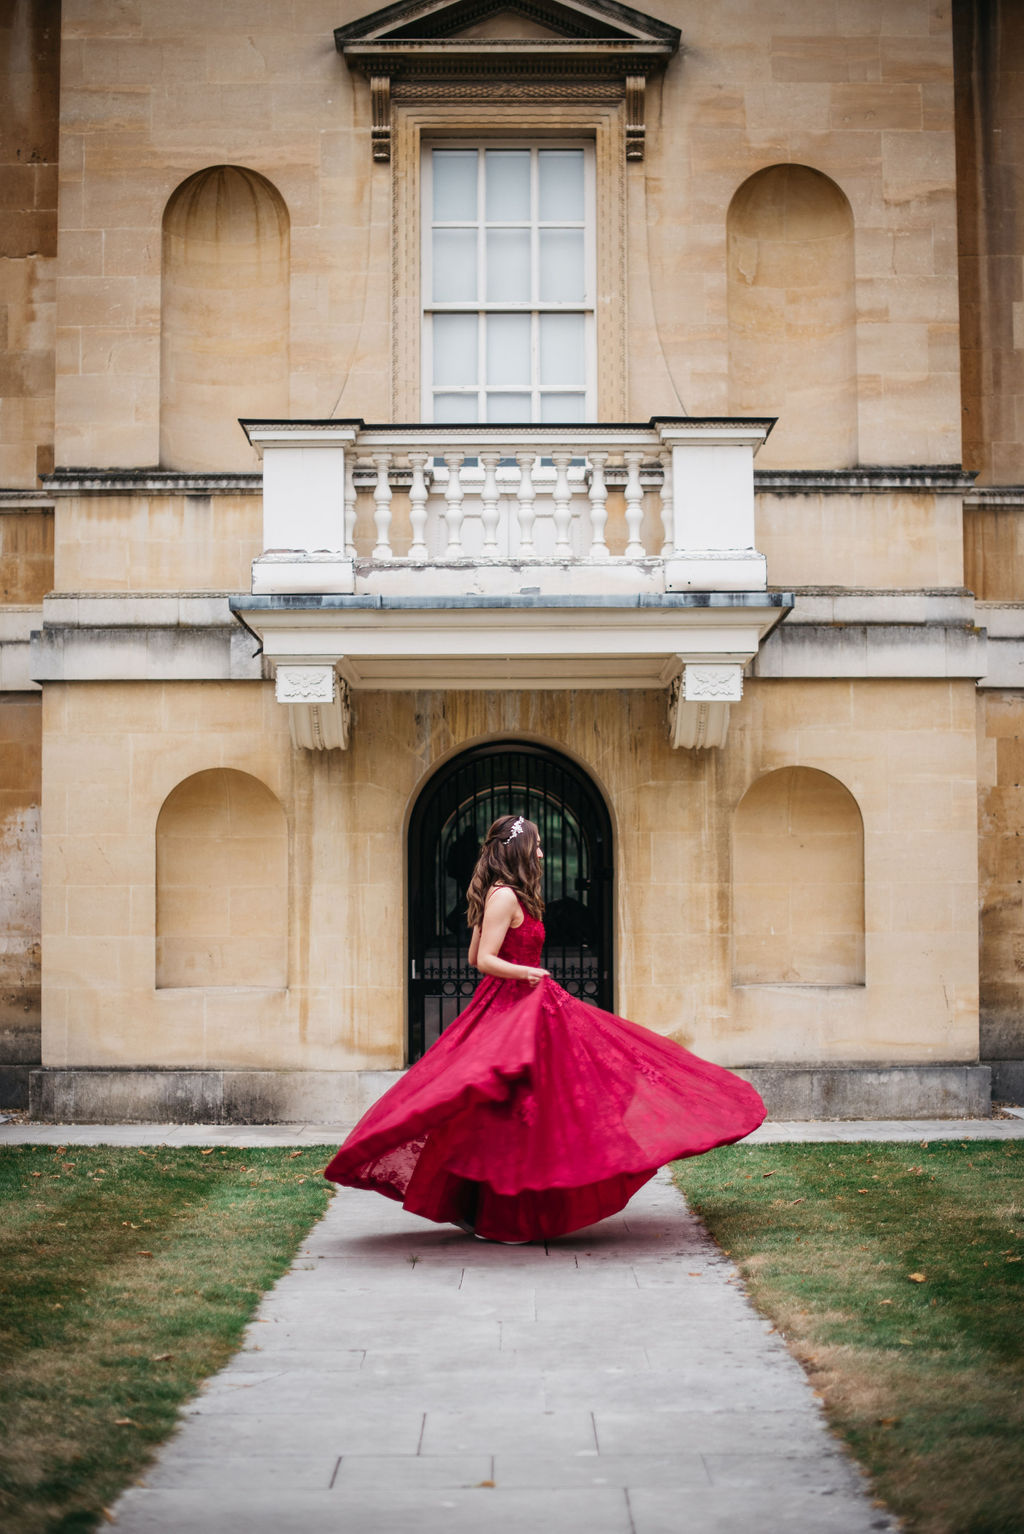 Chinese wedding dress at Chiswick House, London | Sugar Plum Bakes